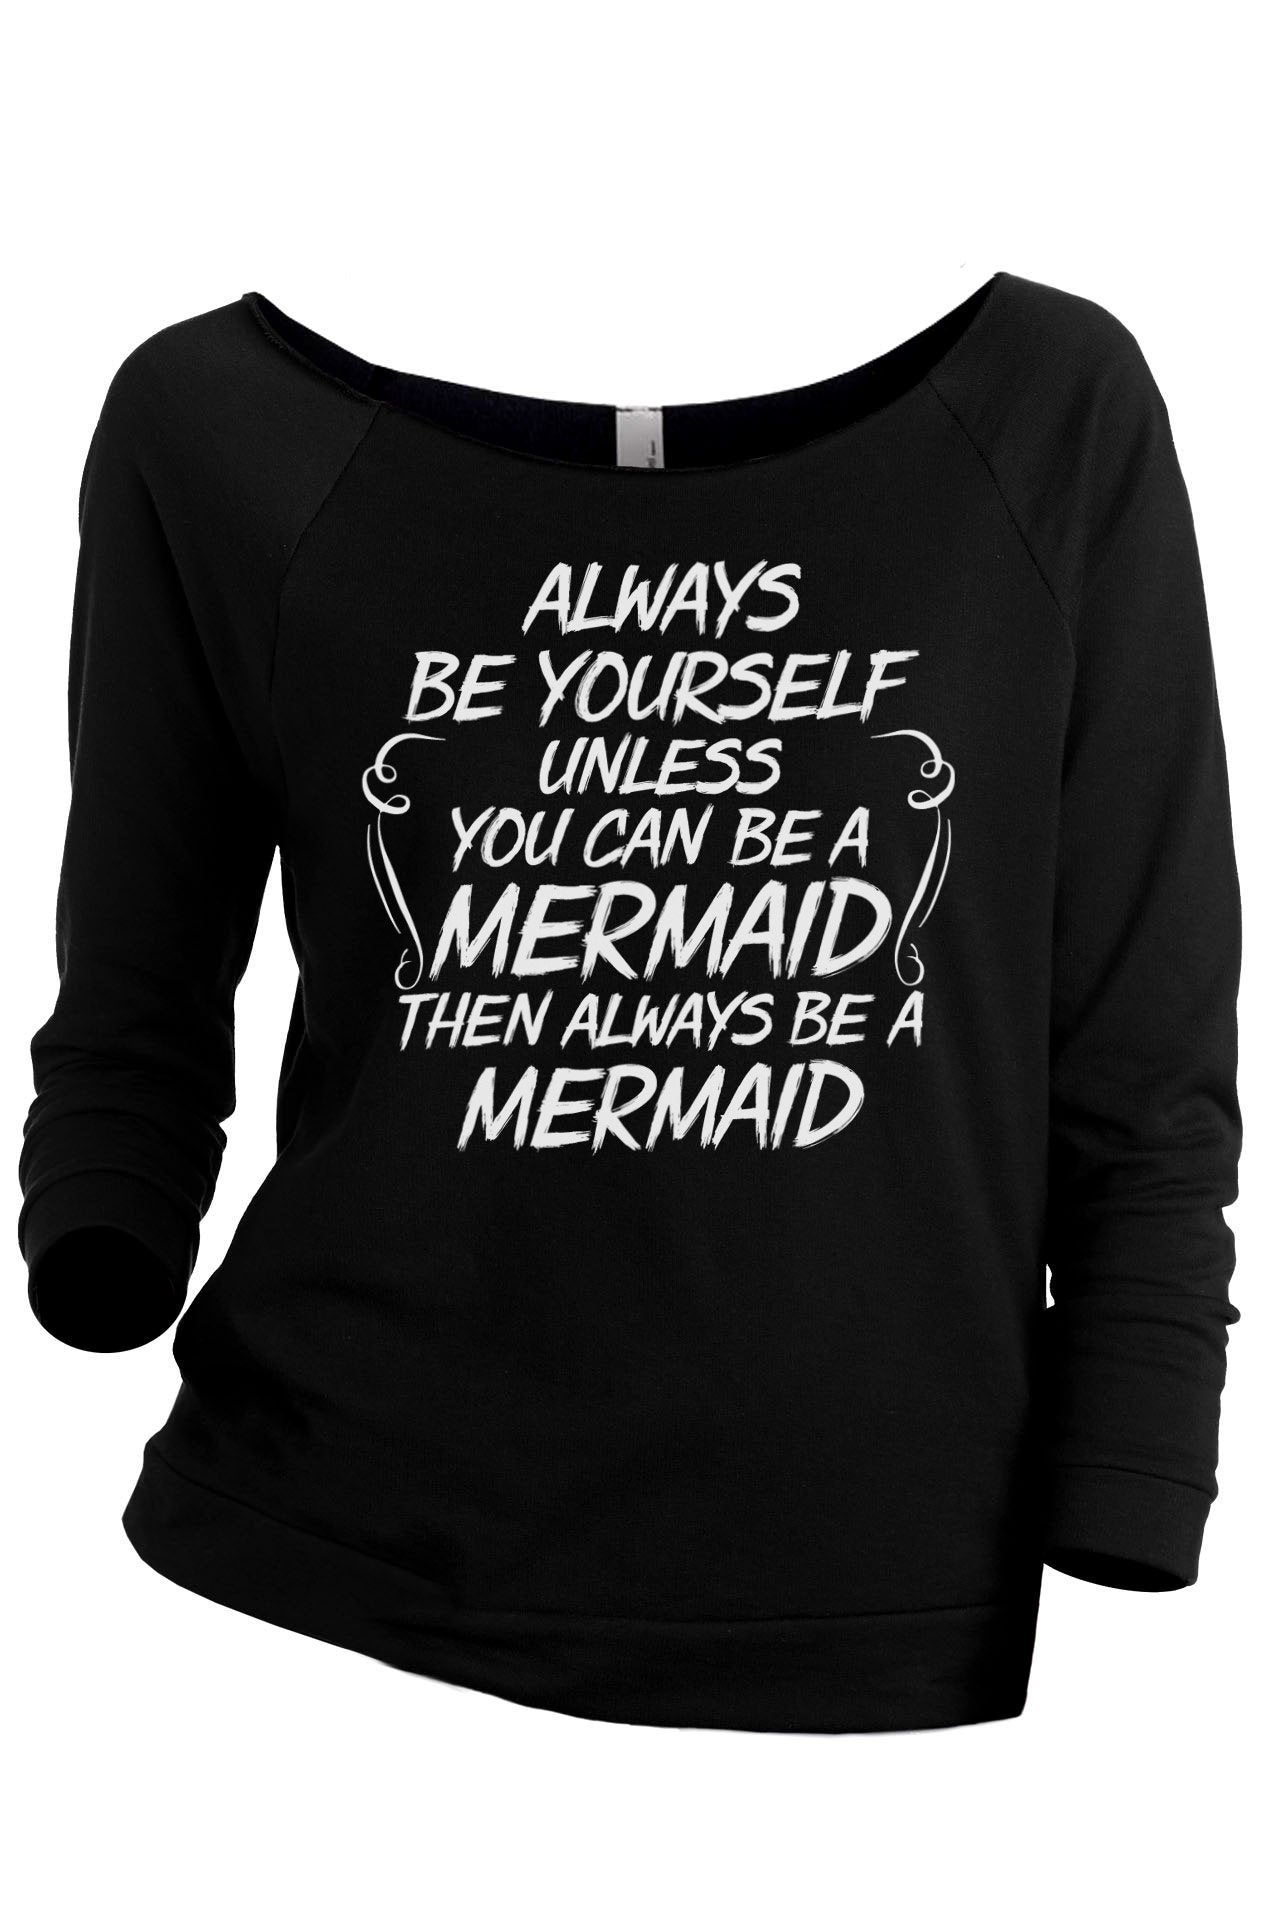 Always Be Yourself, Mermaid Women's Graphic Printed Lightweight Slouchy 3/4 Sleeves Sweatshirt Sport Grey